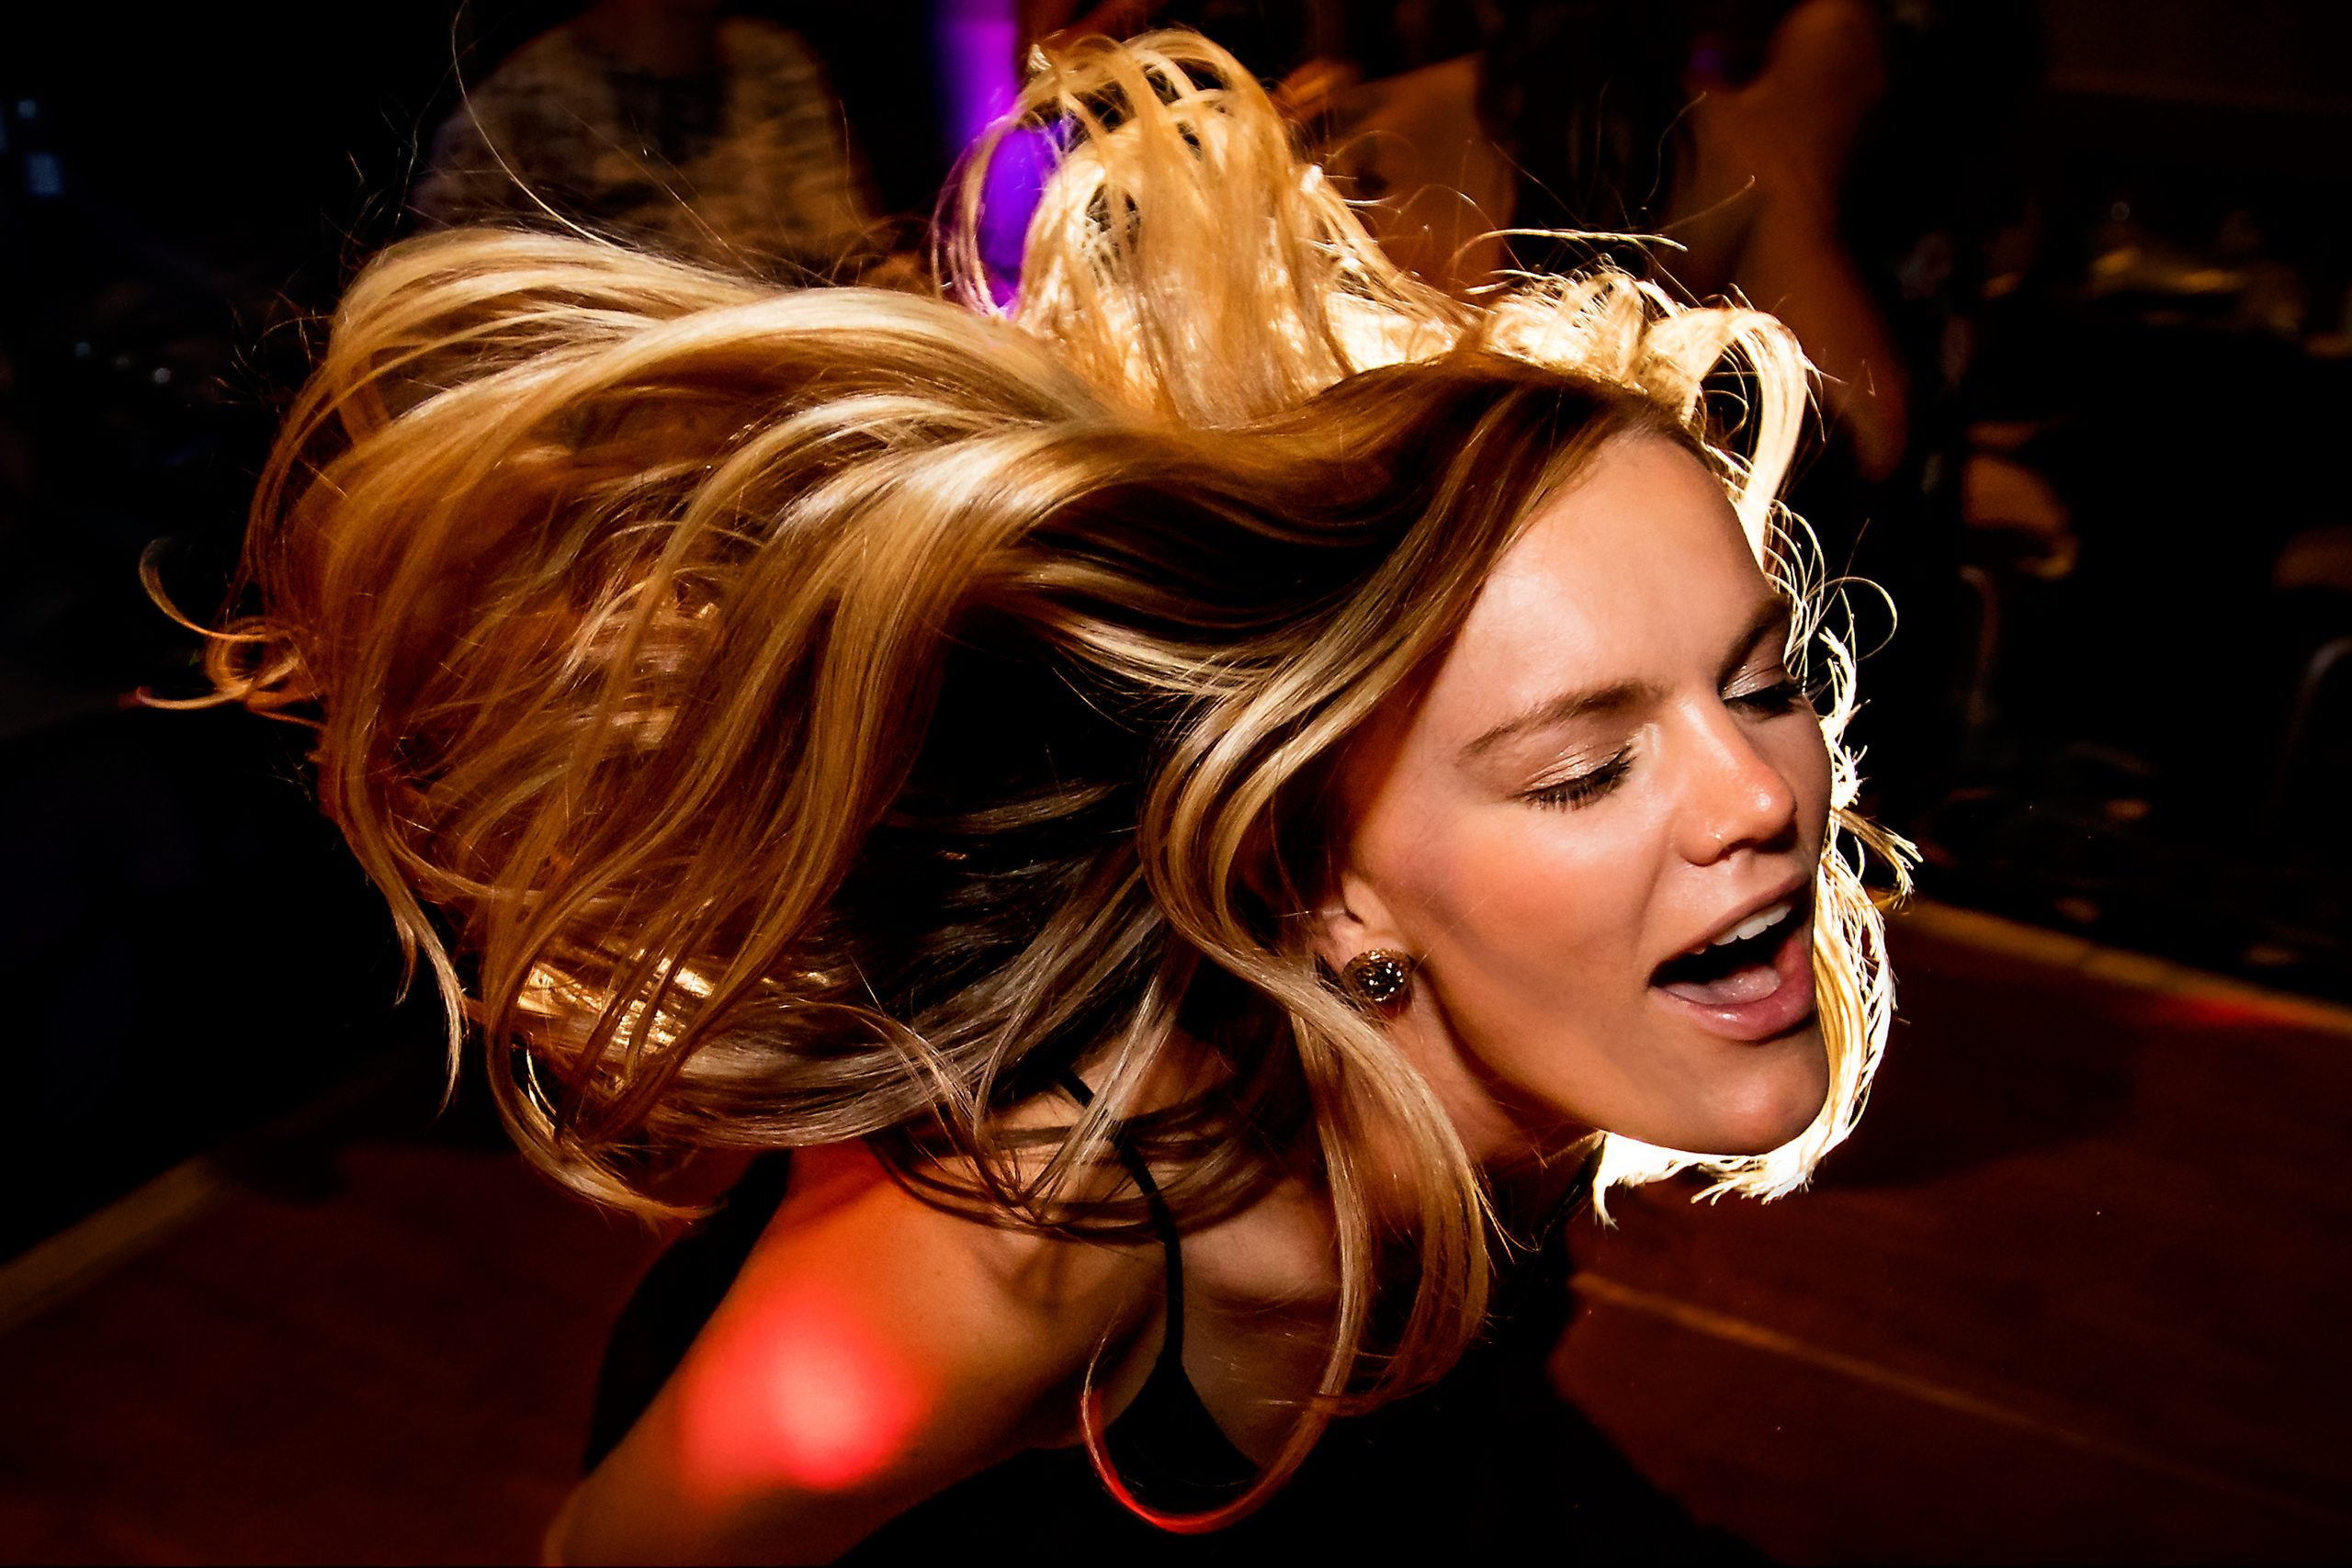 Woman's hair flows freely on the dance floor